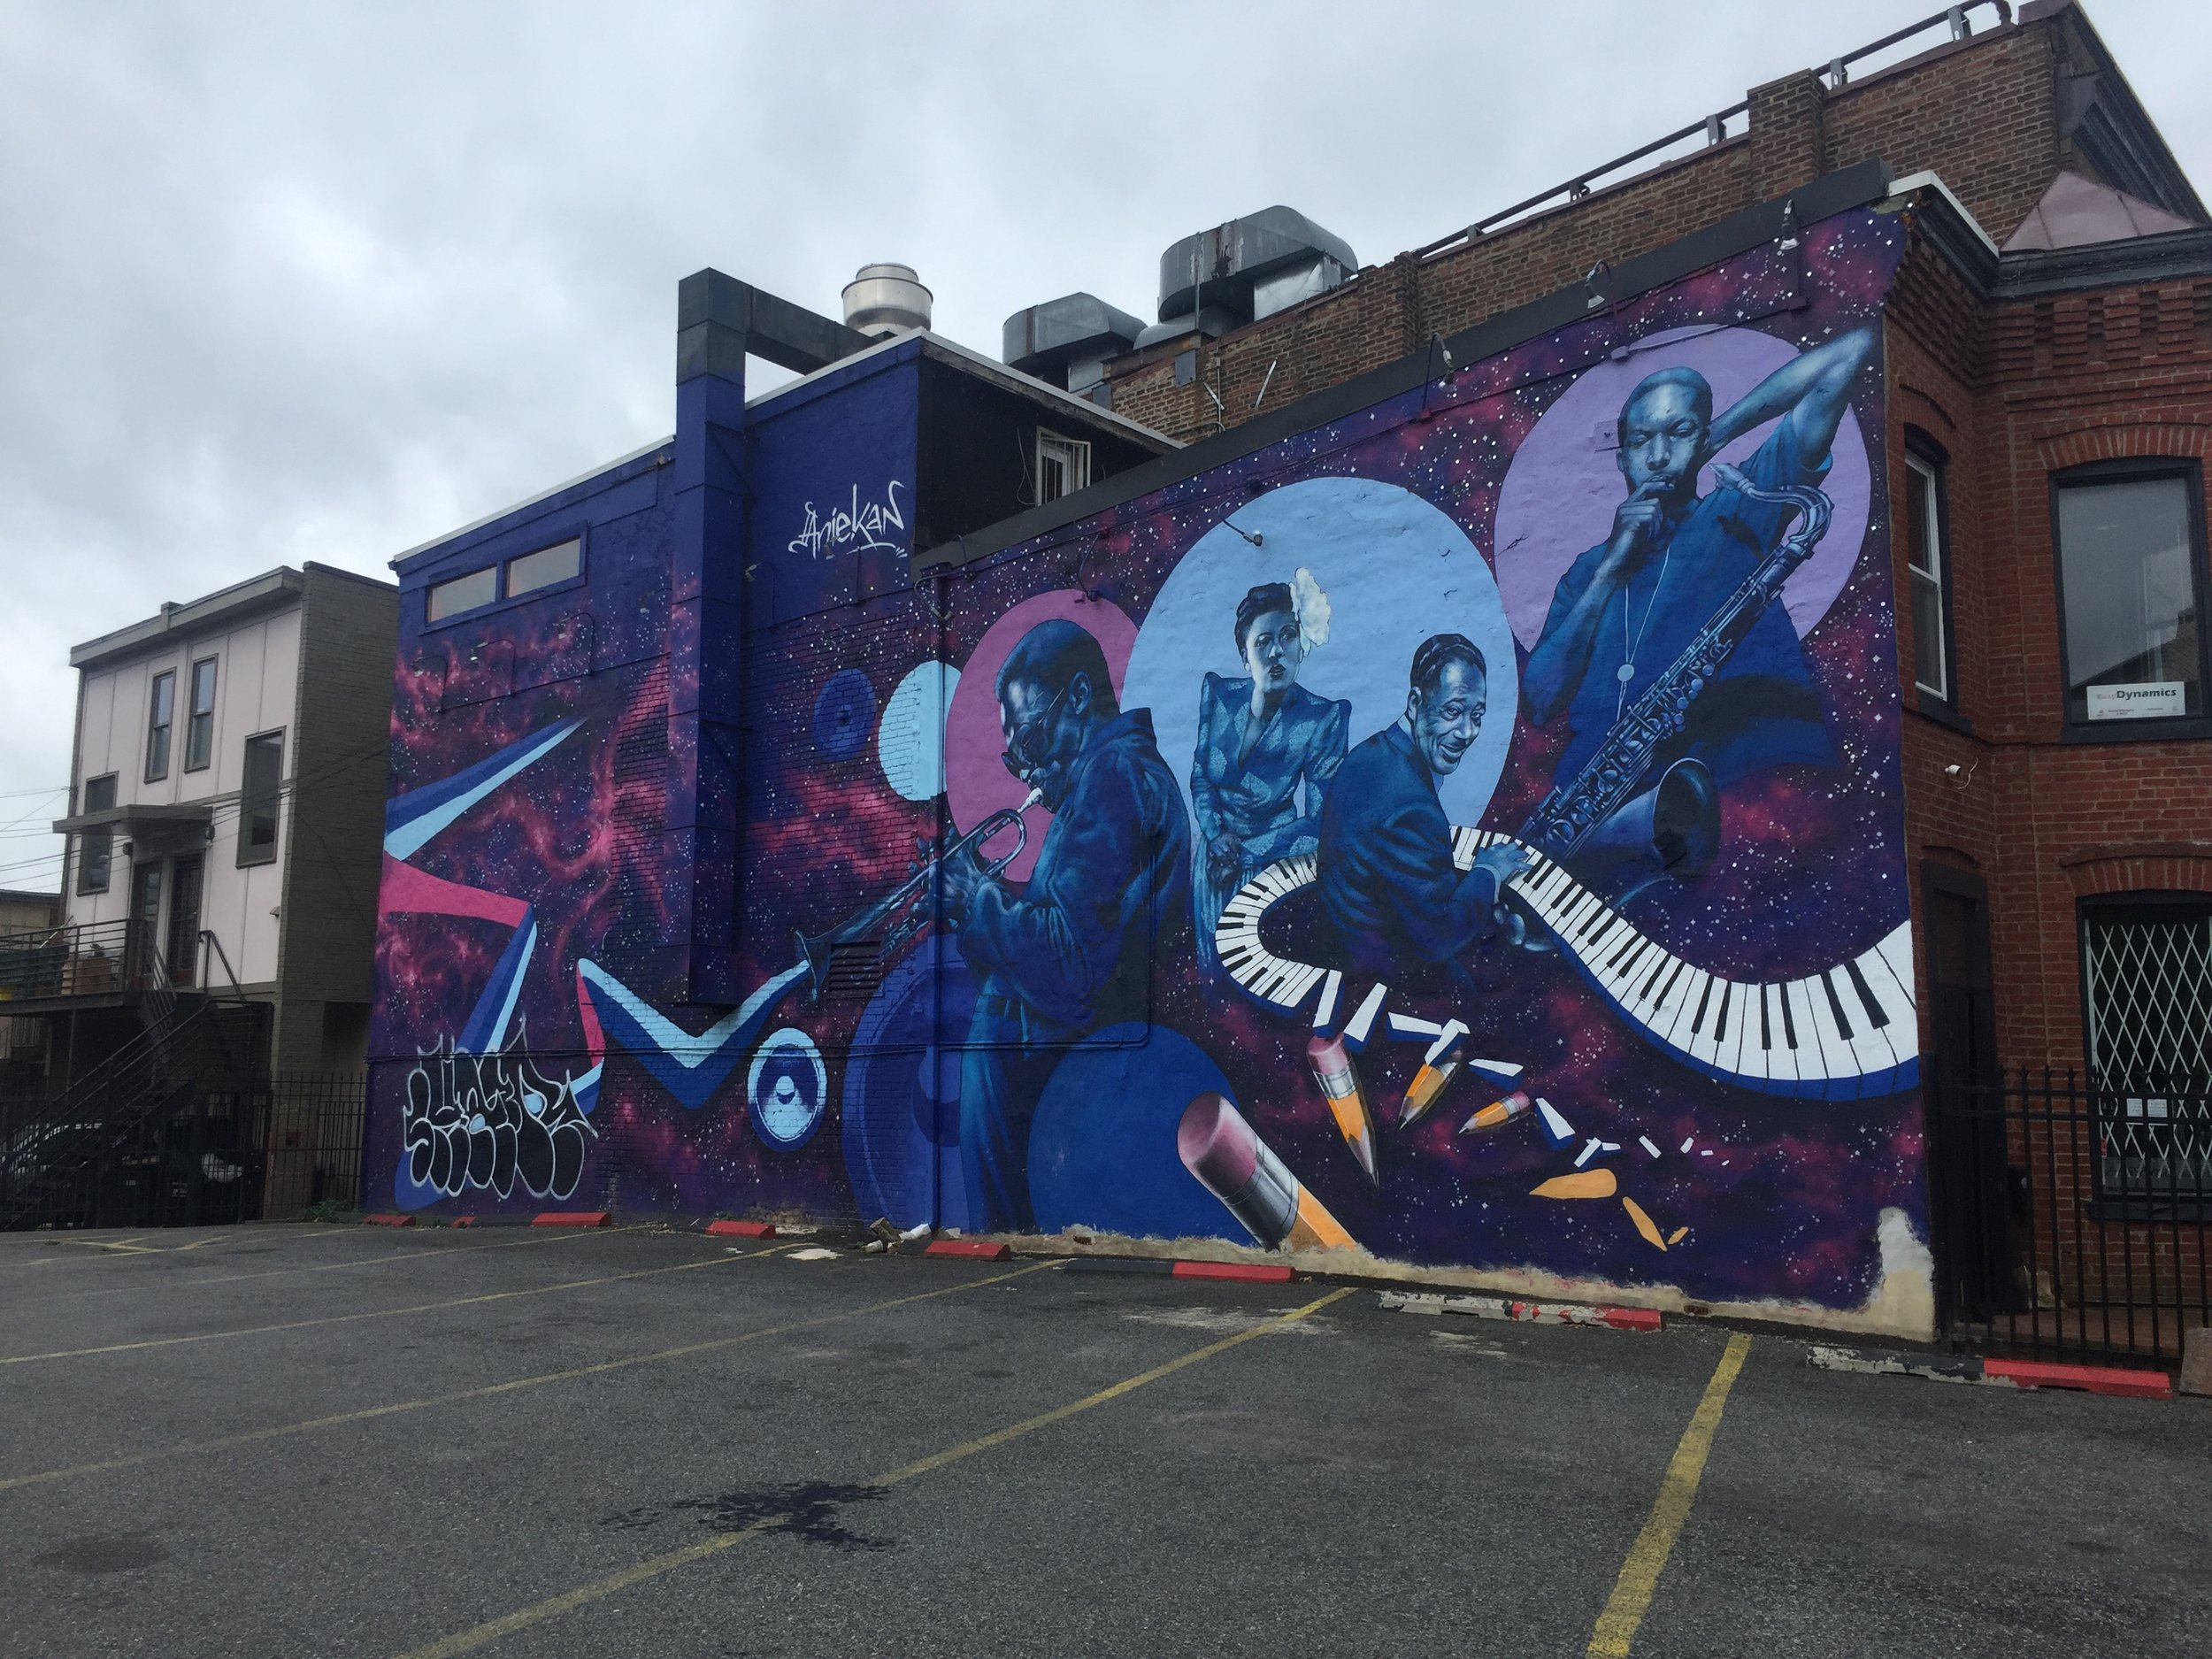 Bohemian Caverns Jazz Mural in Washington, D.C. | Best Instagram Murals